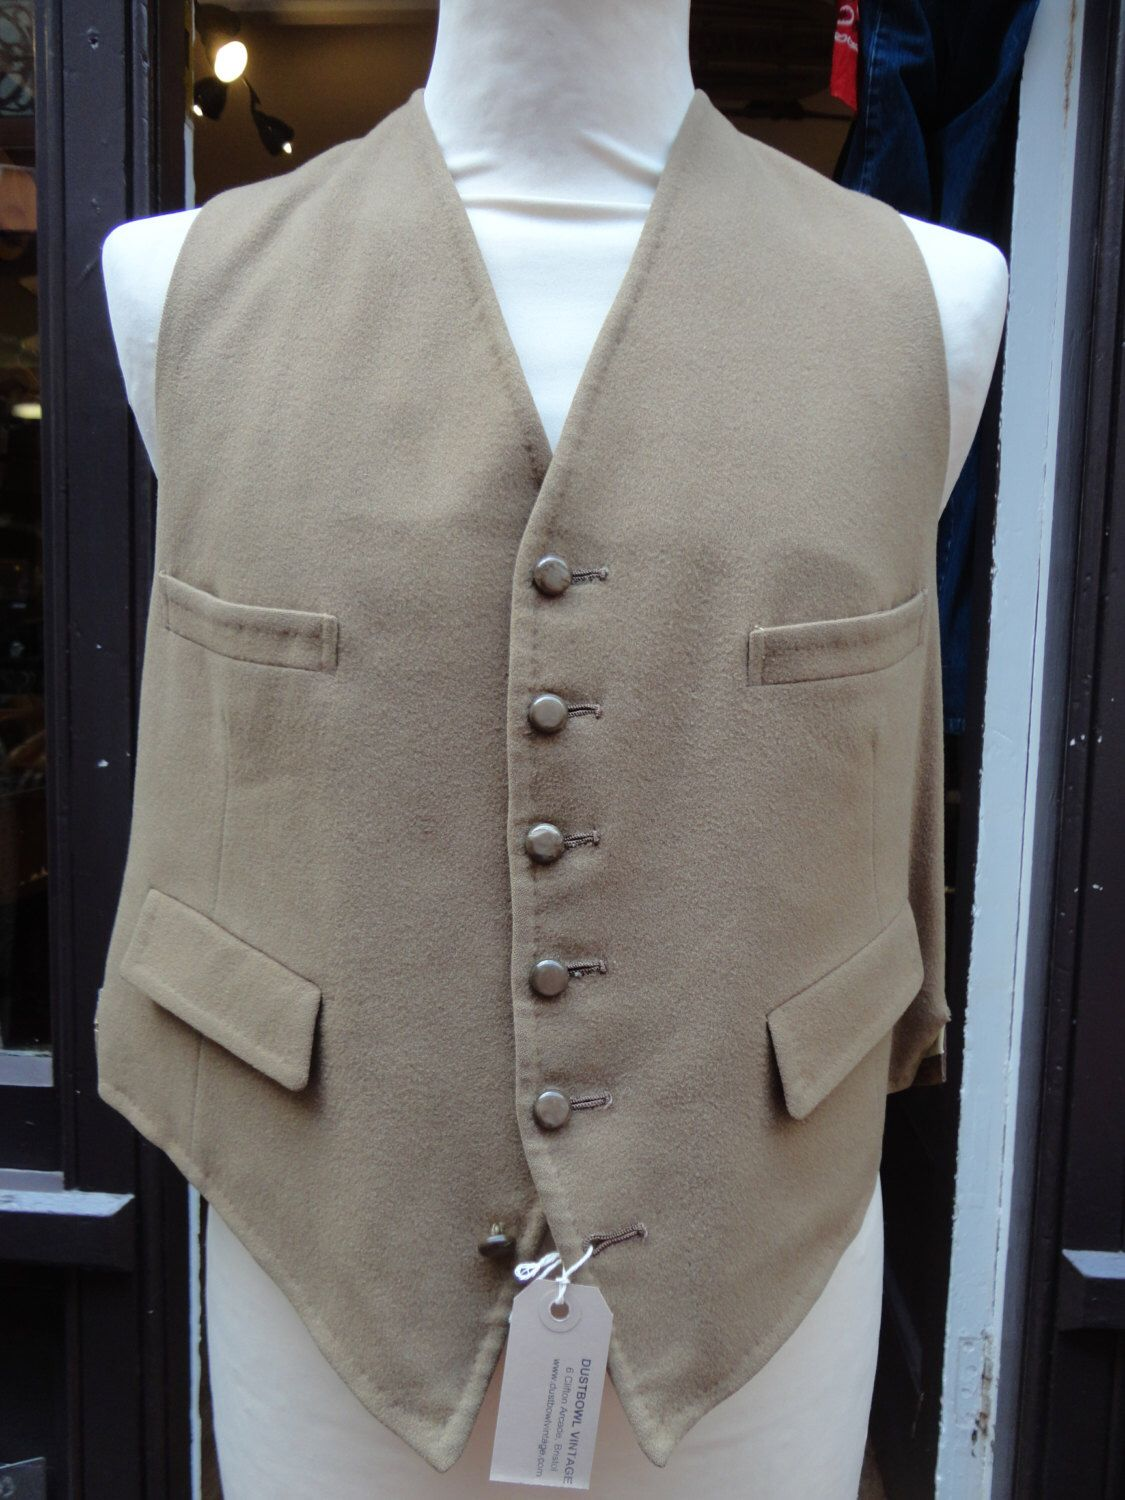 """Vintage 1960s 60s cream beige tan brown wool waistcoat vest large 40"""" chest back cinch by TheDustbowlVintage on Etsy https://www.etsy.com/listing/236468477/vintage-1960s-60s-cream-beige-tan-brown"""